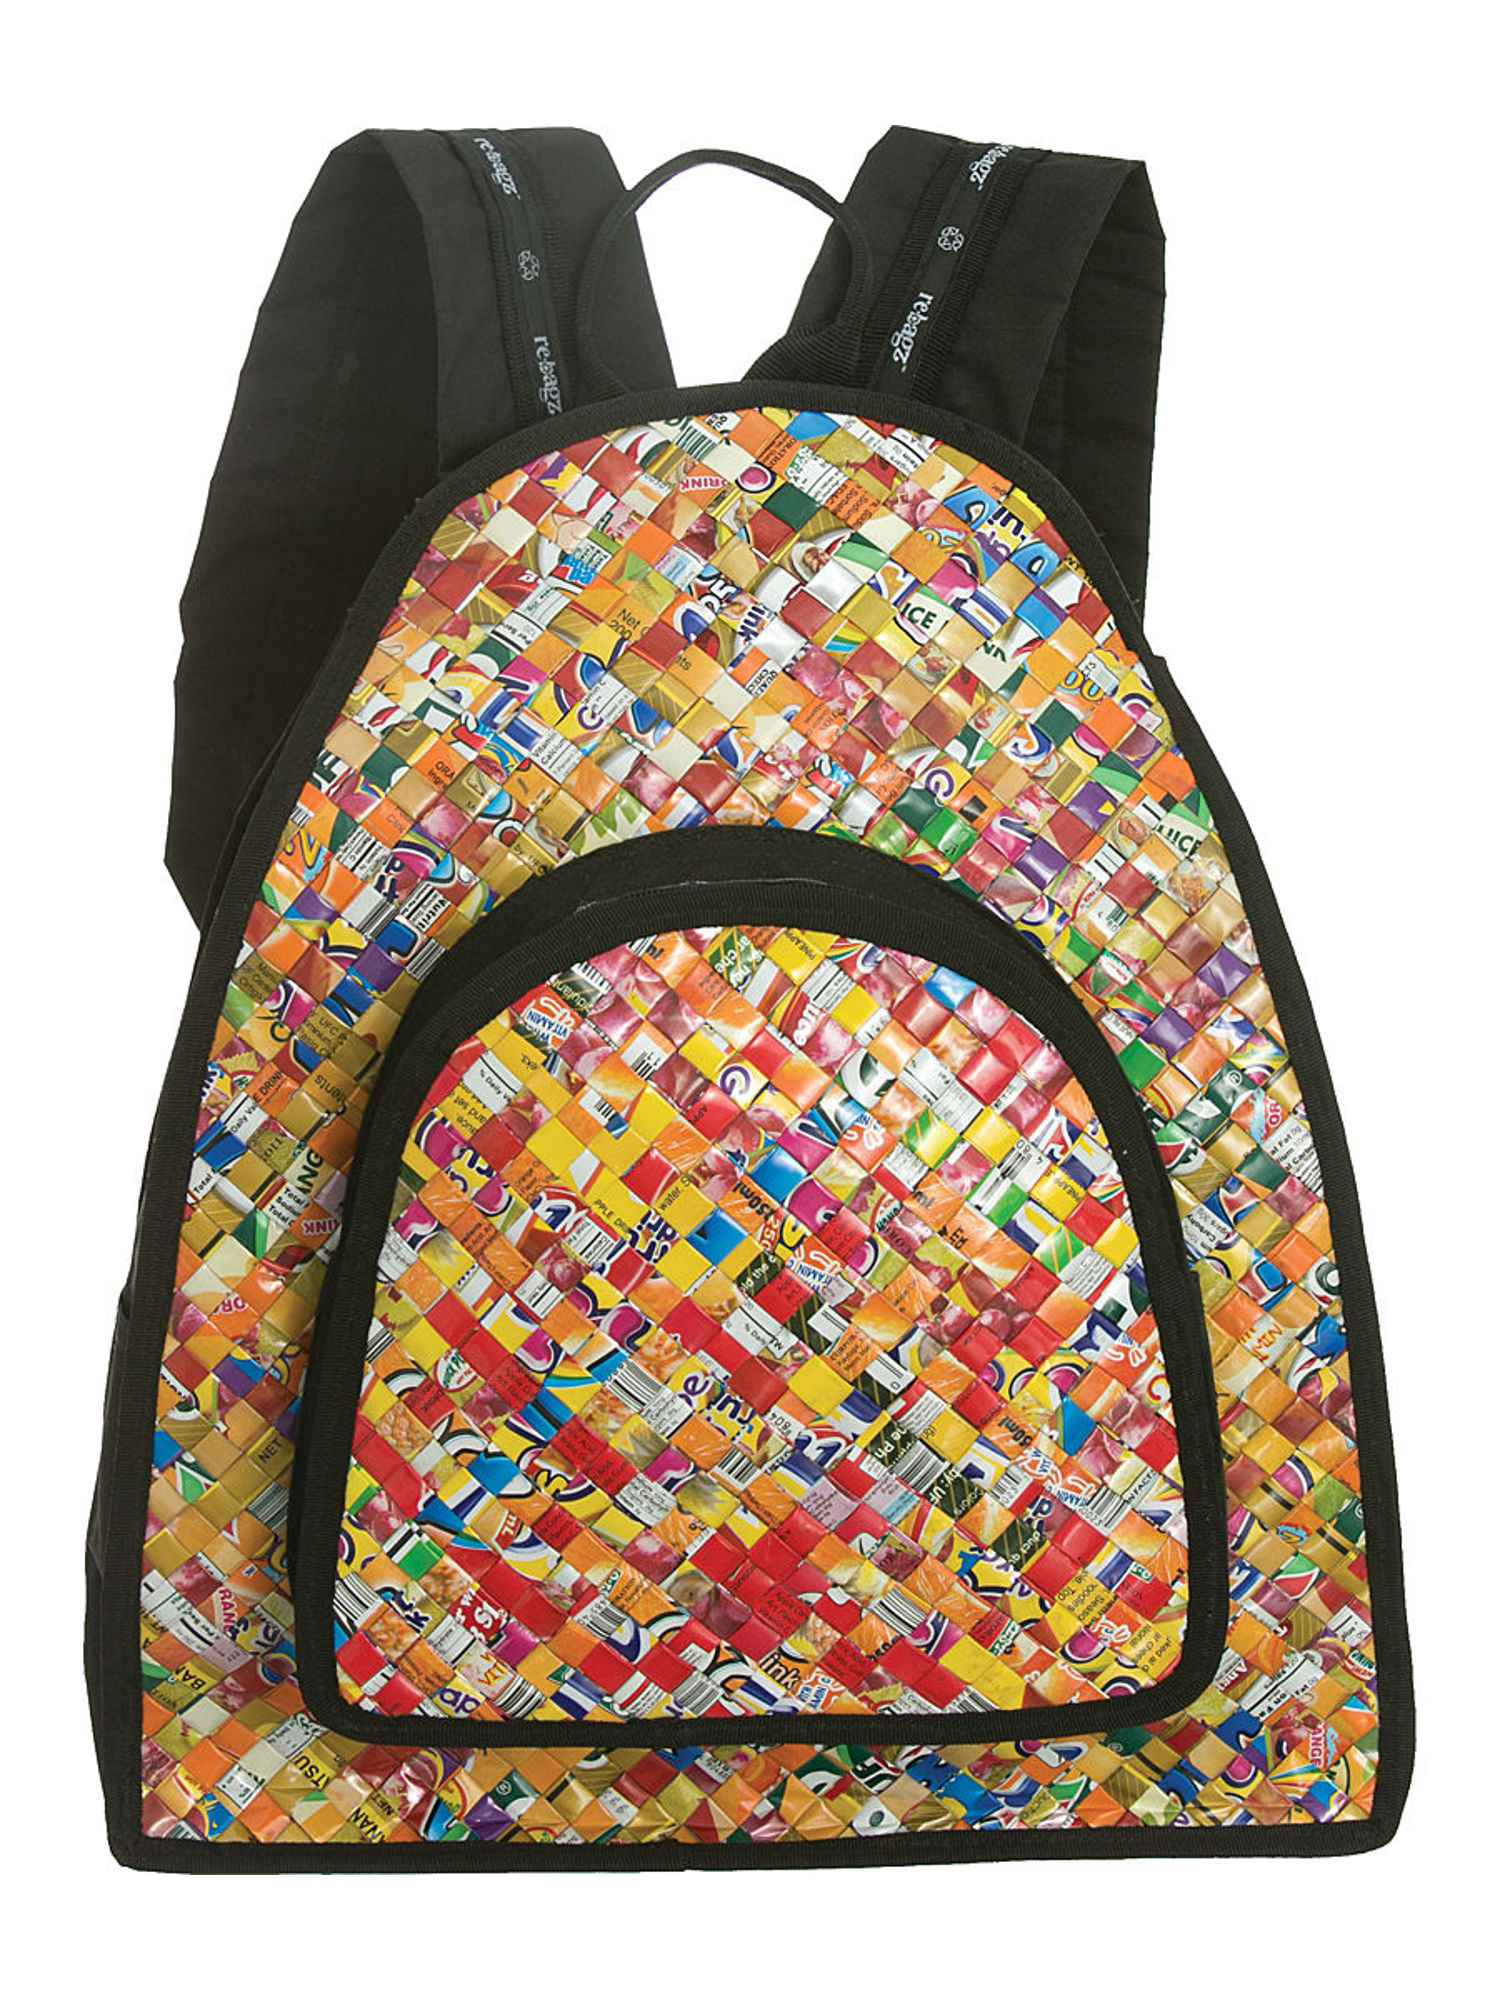 Rebagz  Eco-Friendly Recycled Backpack